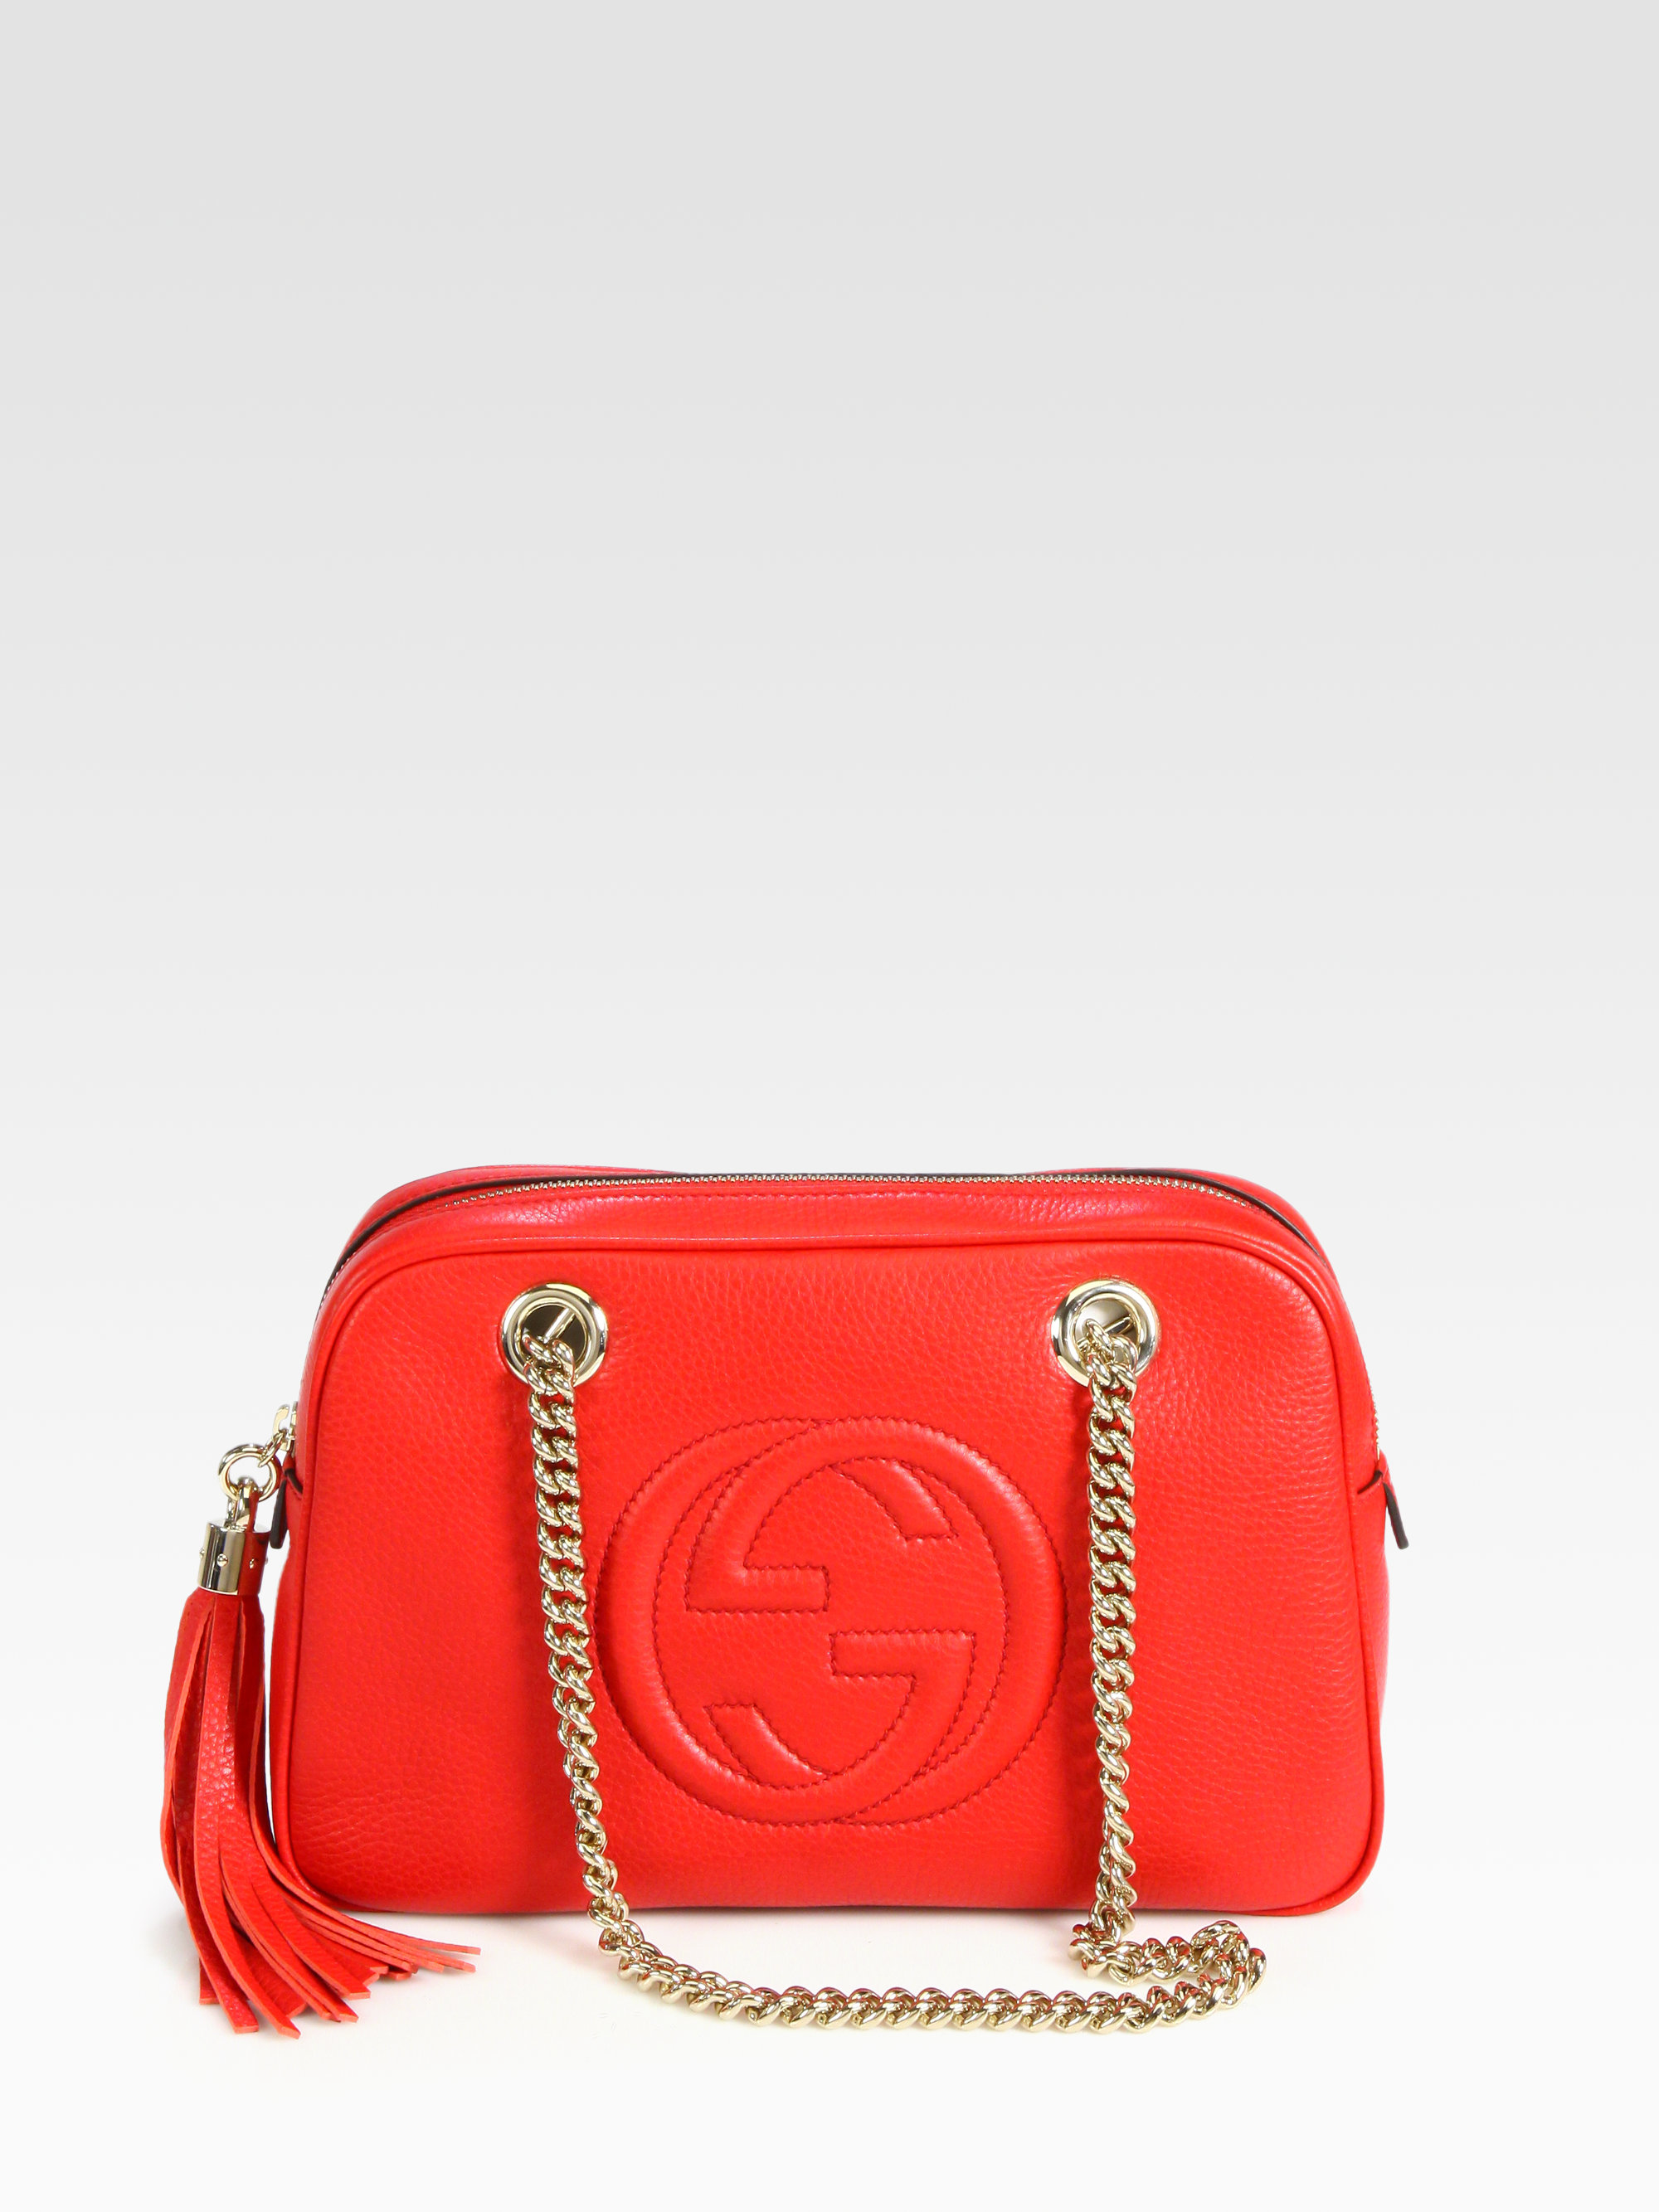 Gucci Soho Leather Shoulder Bag in Red | Lyst